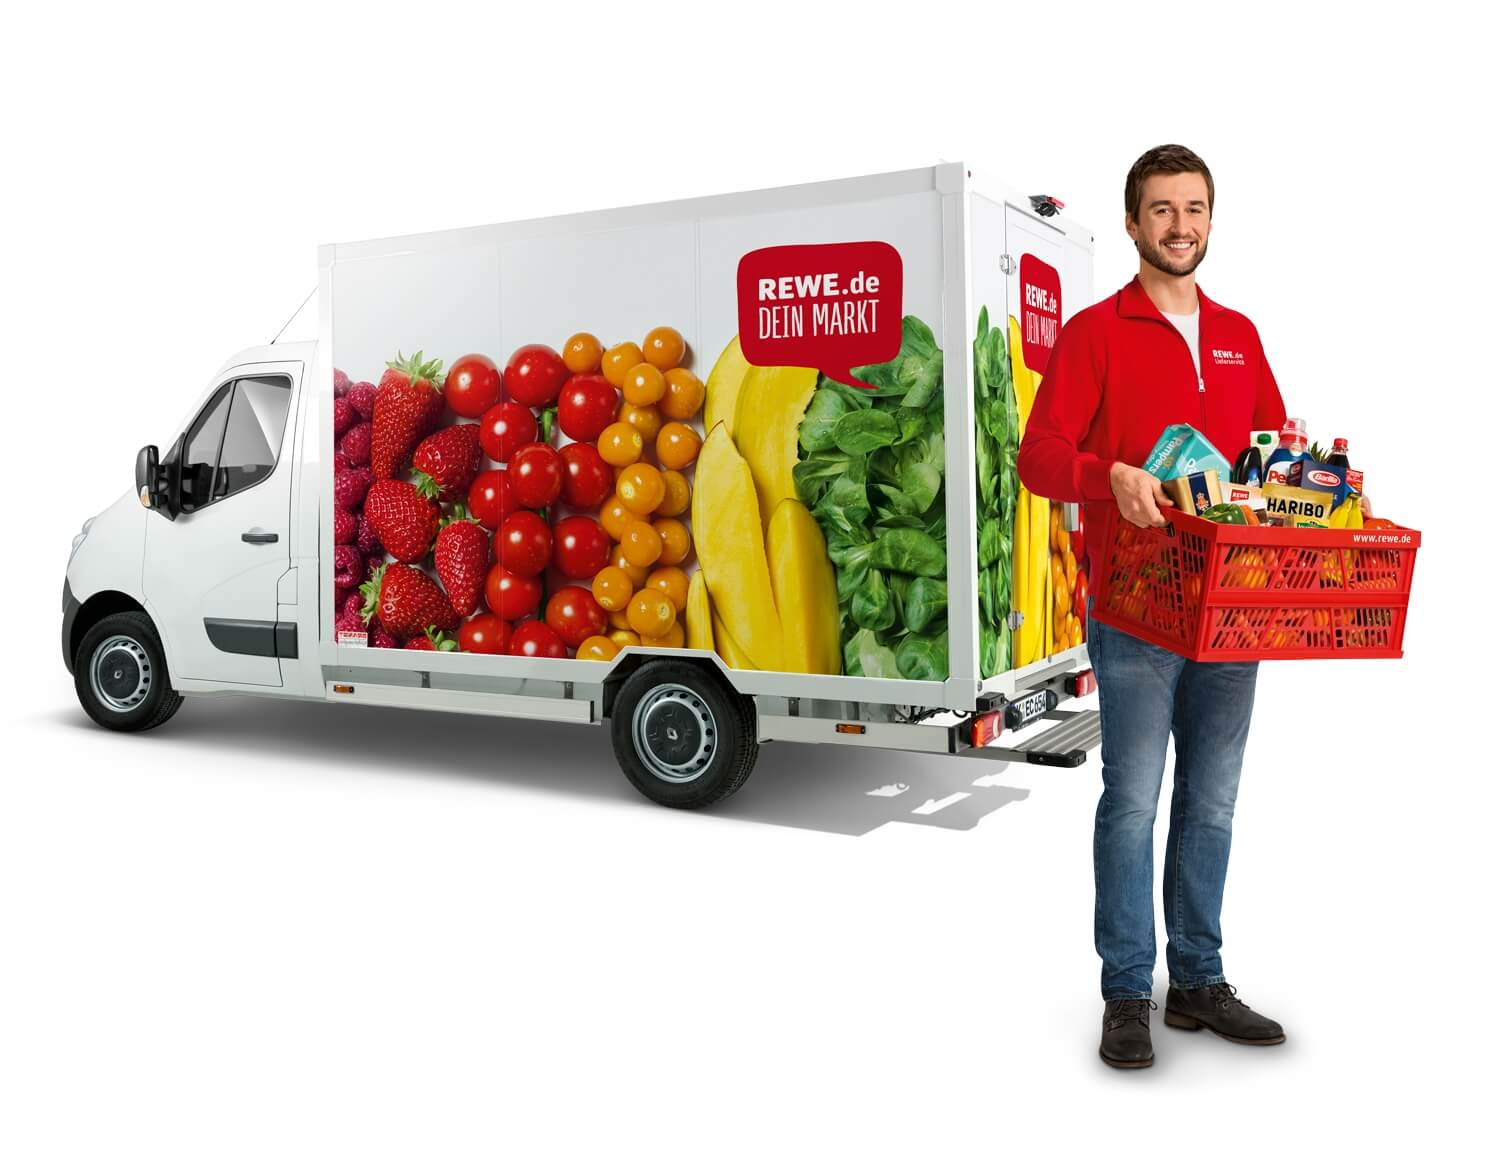 REWE Angebote, Coupons & Cashback Deals 💰 Spare bei REWE